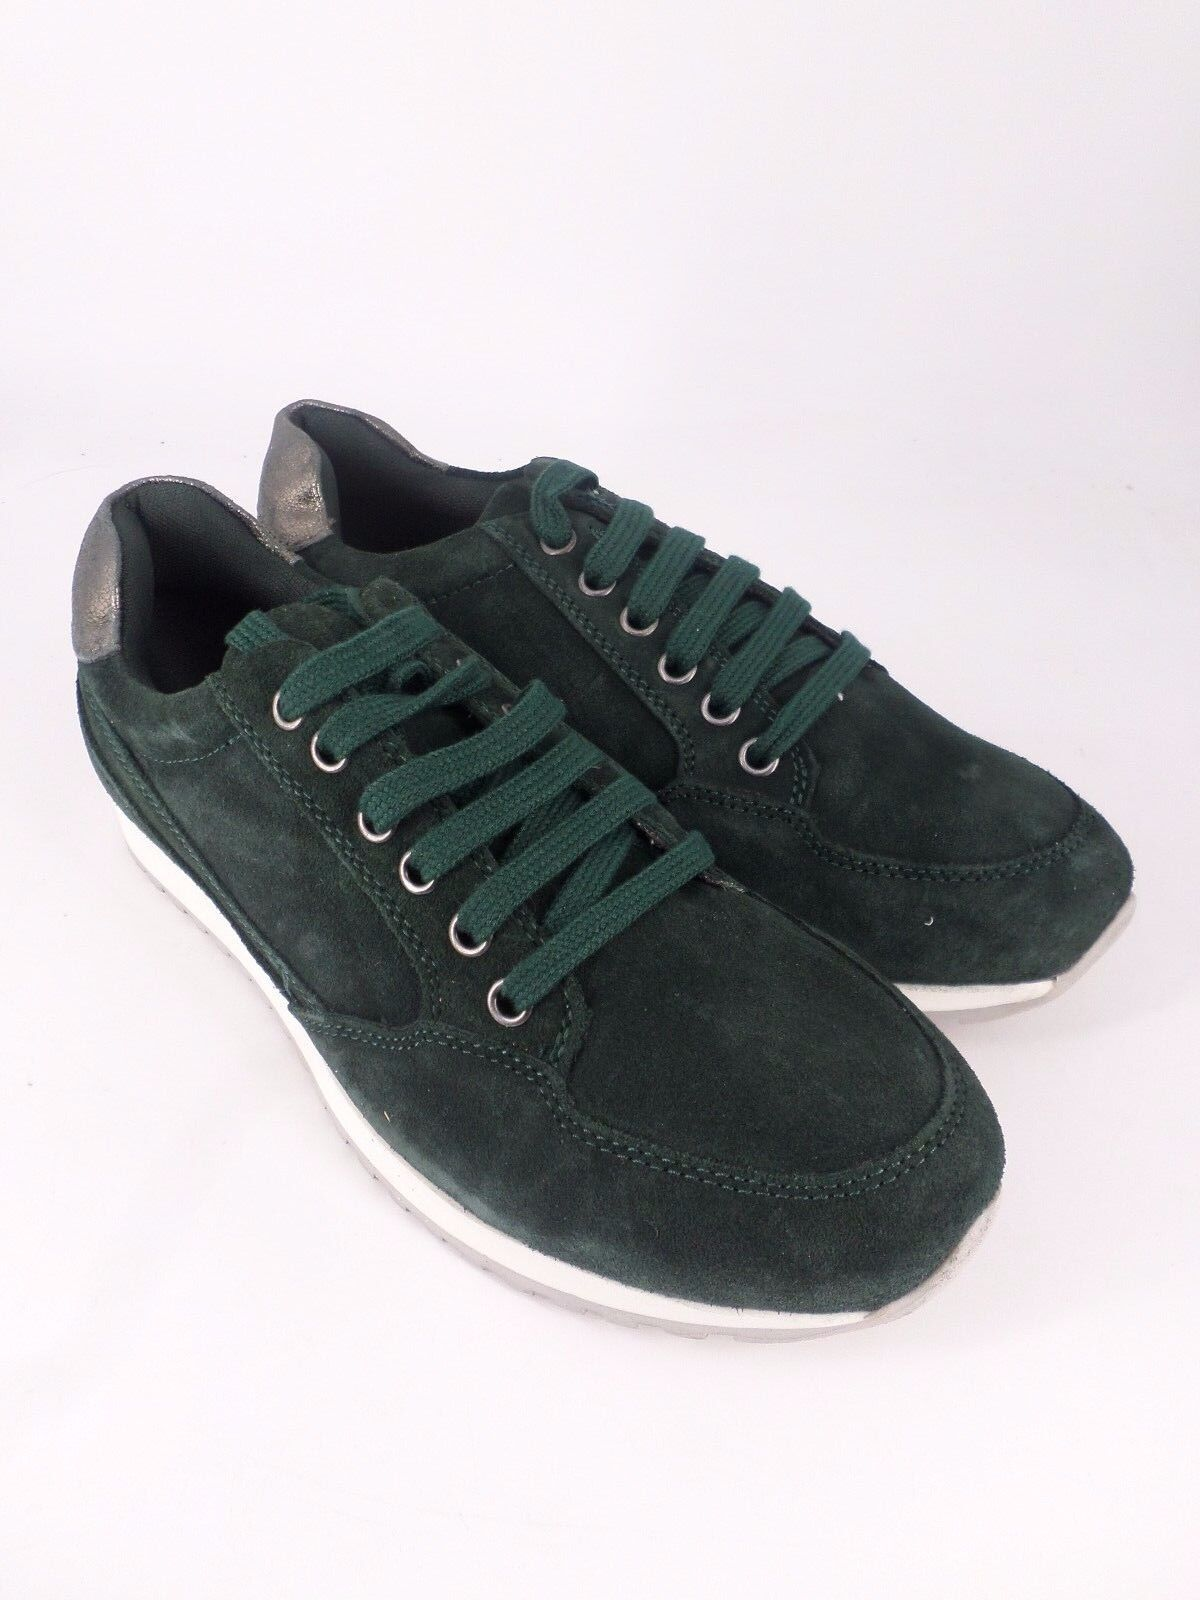 WHITE STUFF TEAL D759625 SARAH TRAINERS LN29 80 SALEs